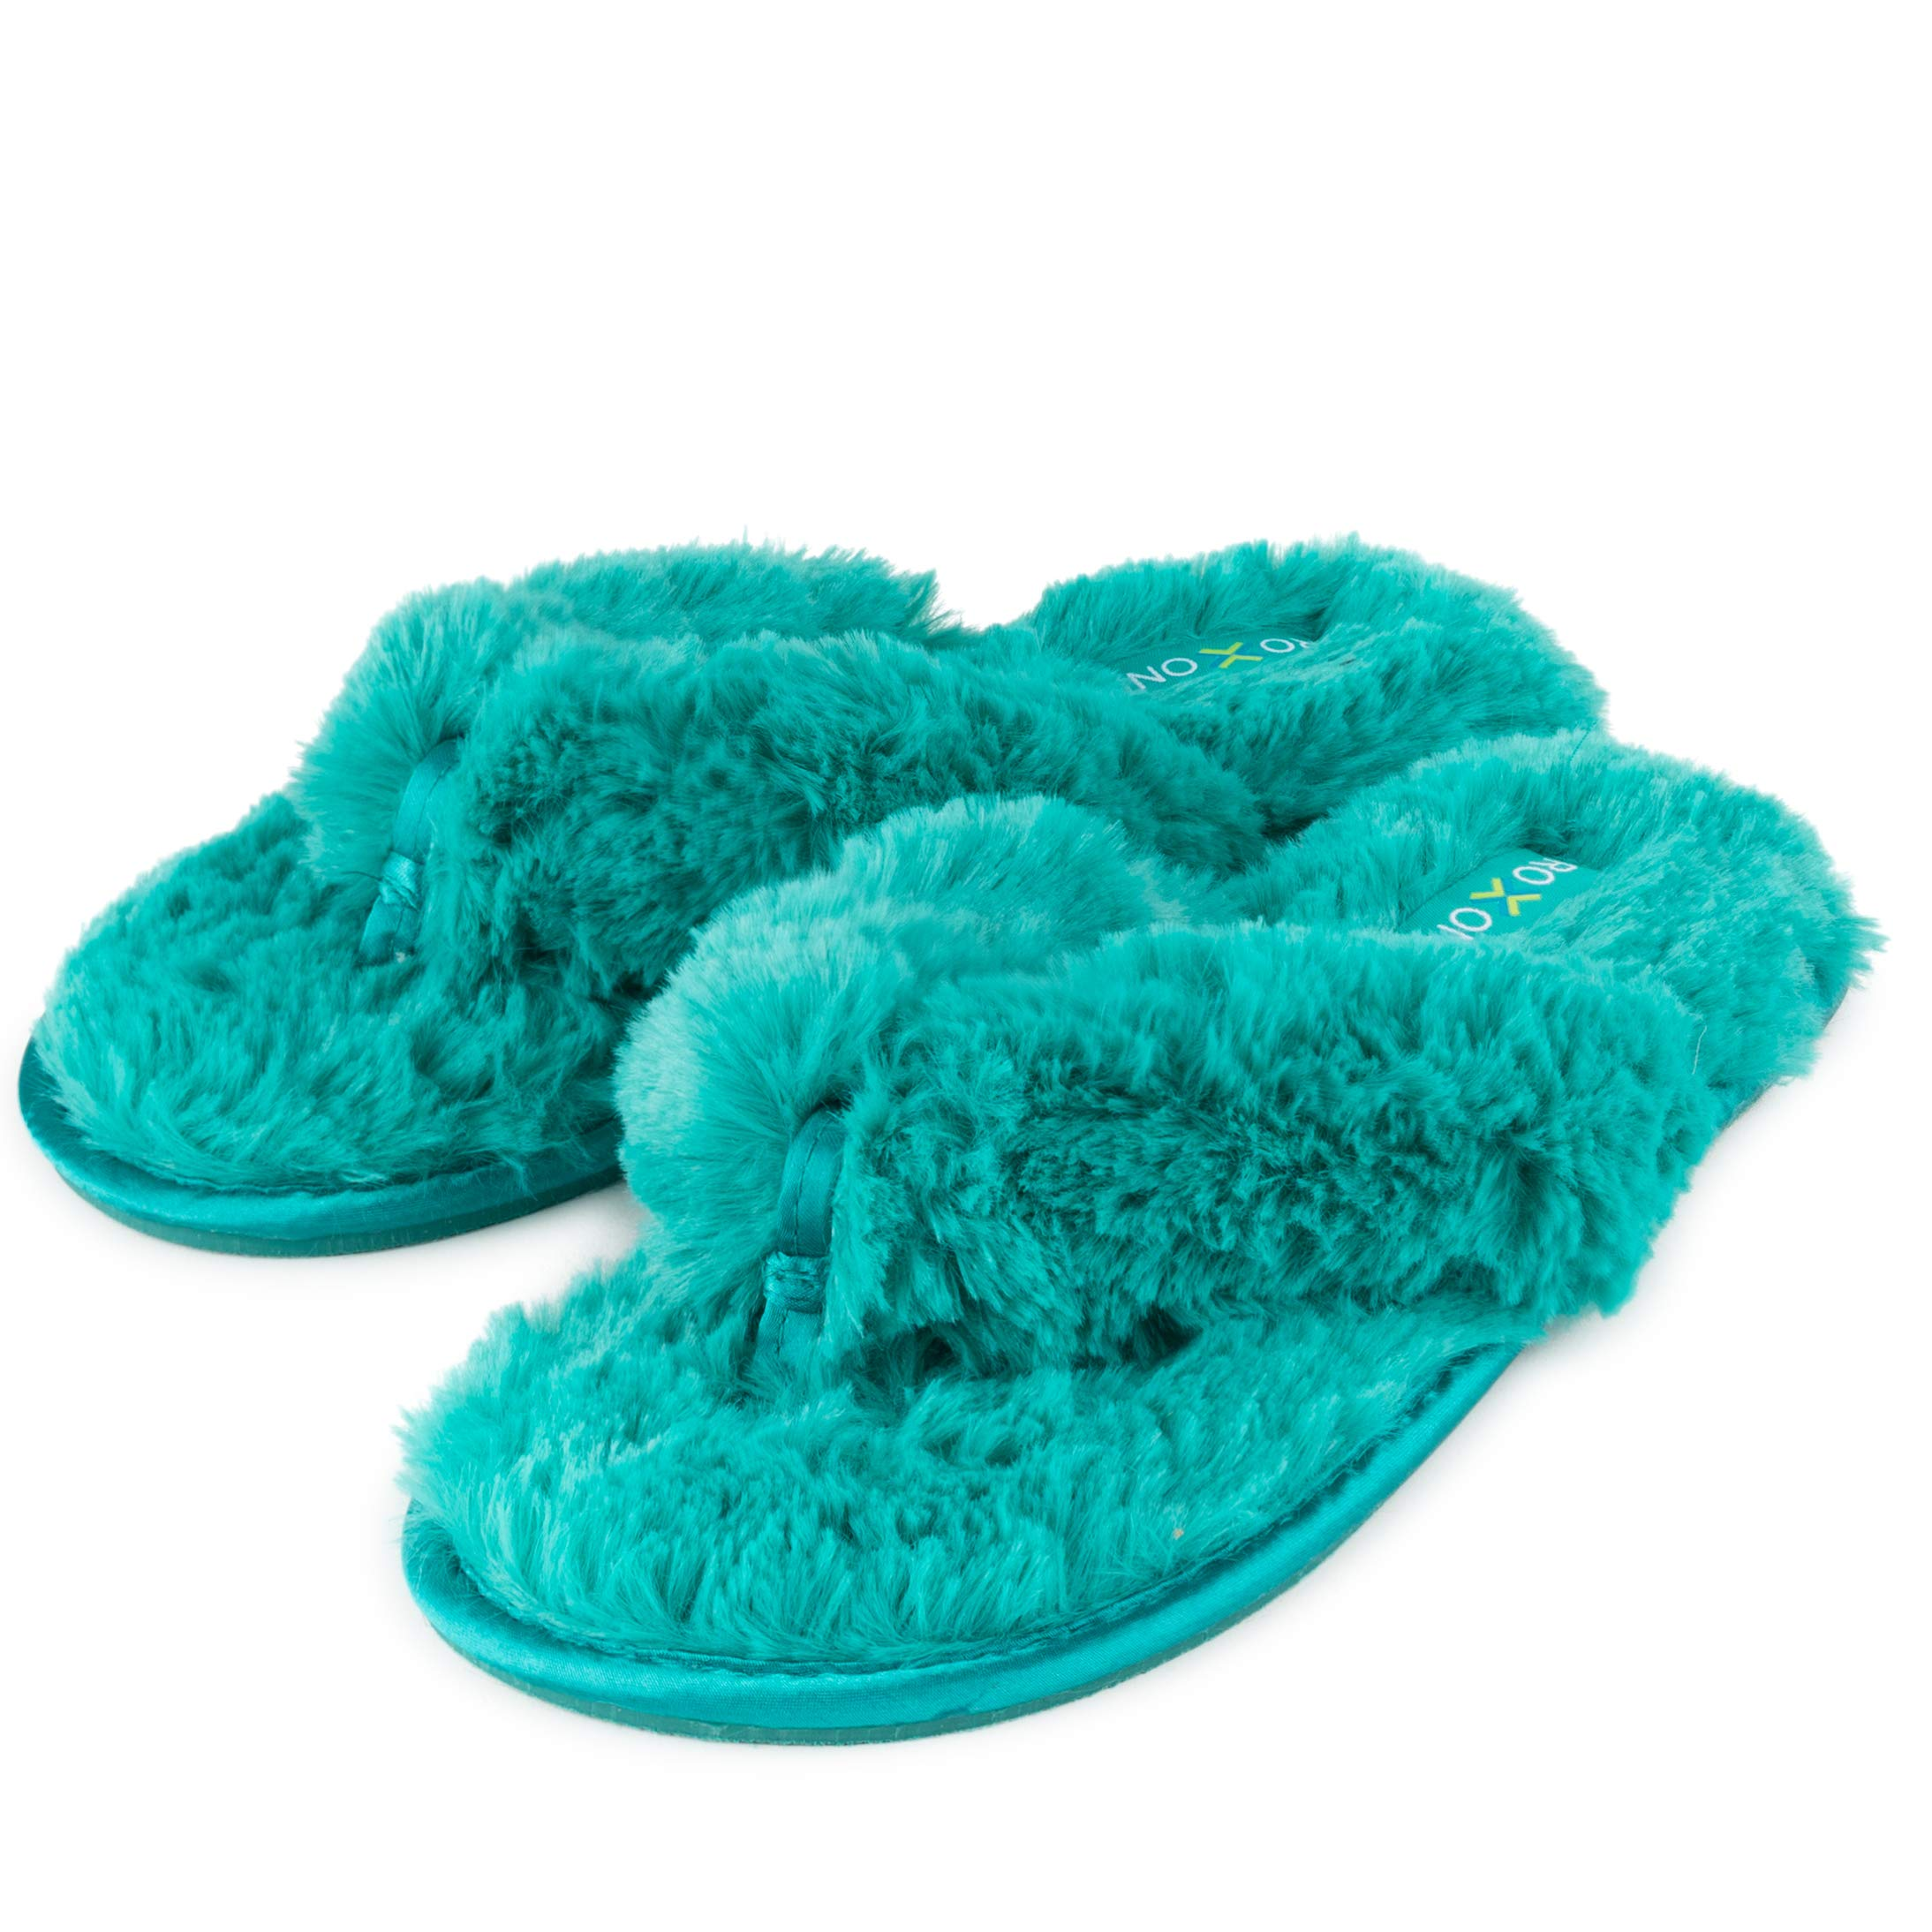 Image of Flip Flop Style Fuzzy Slippers for Women